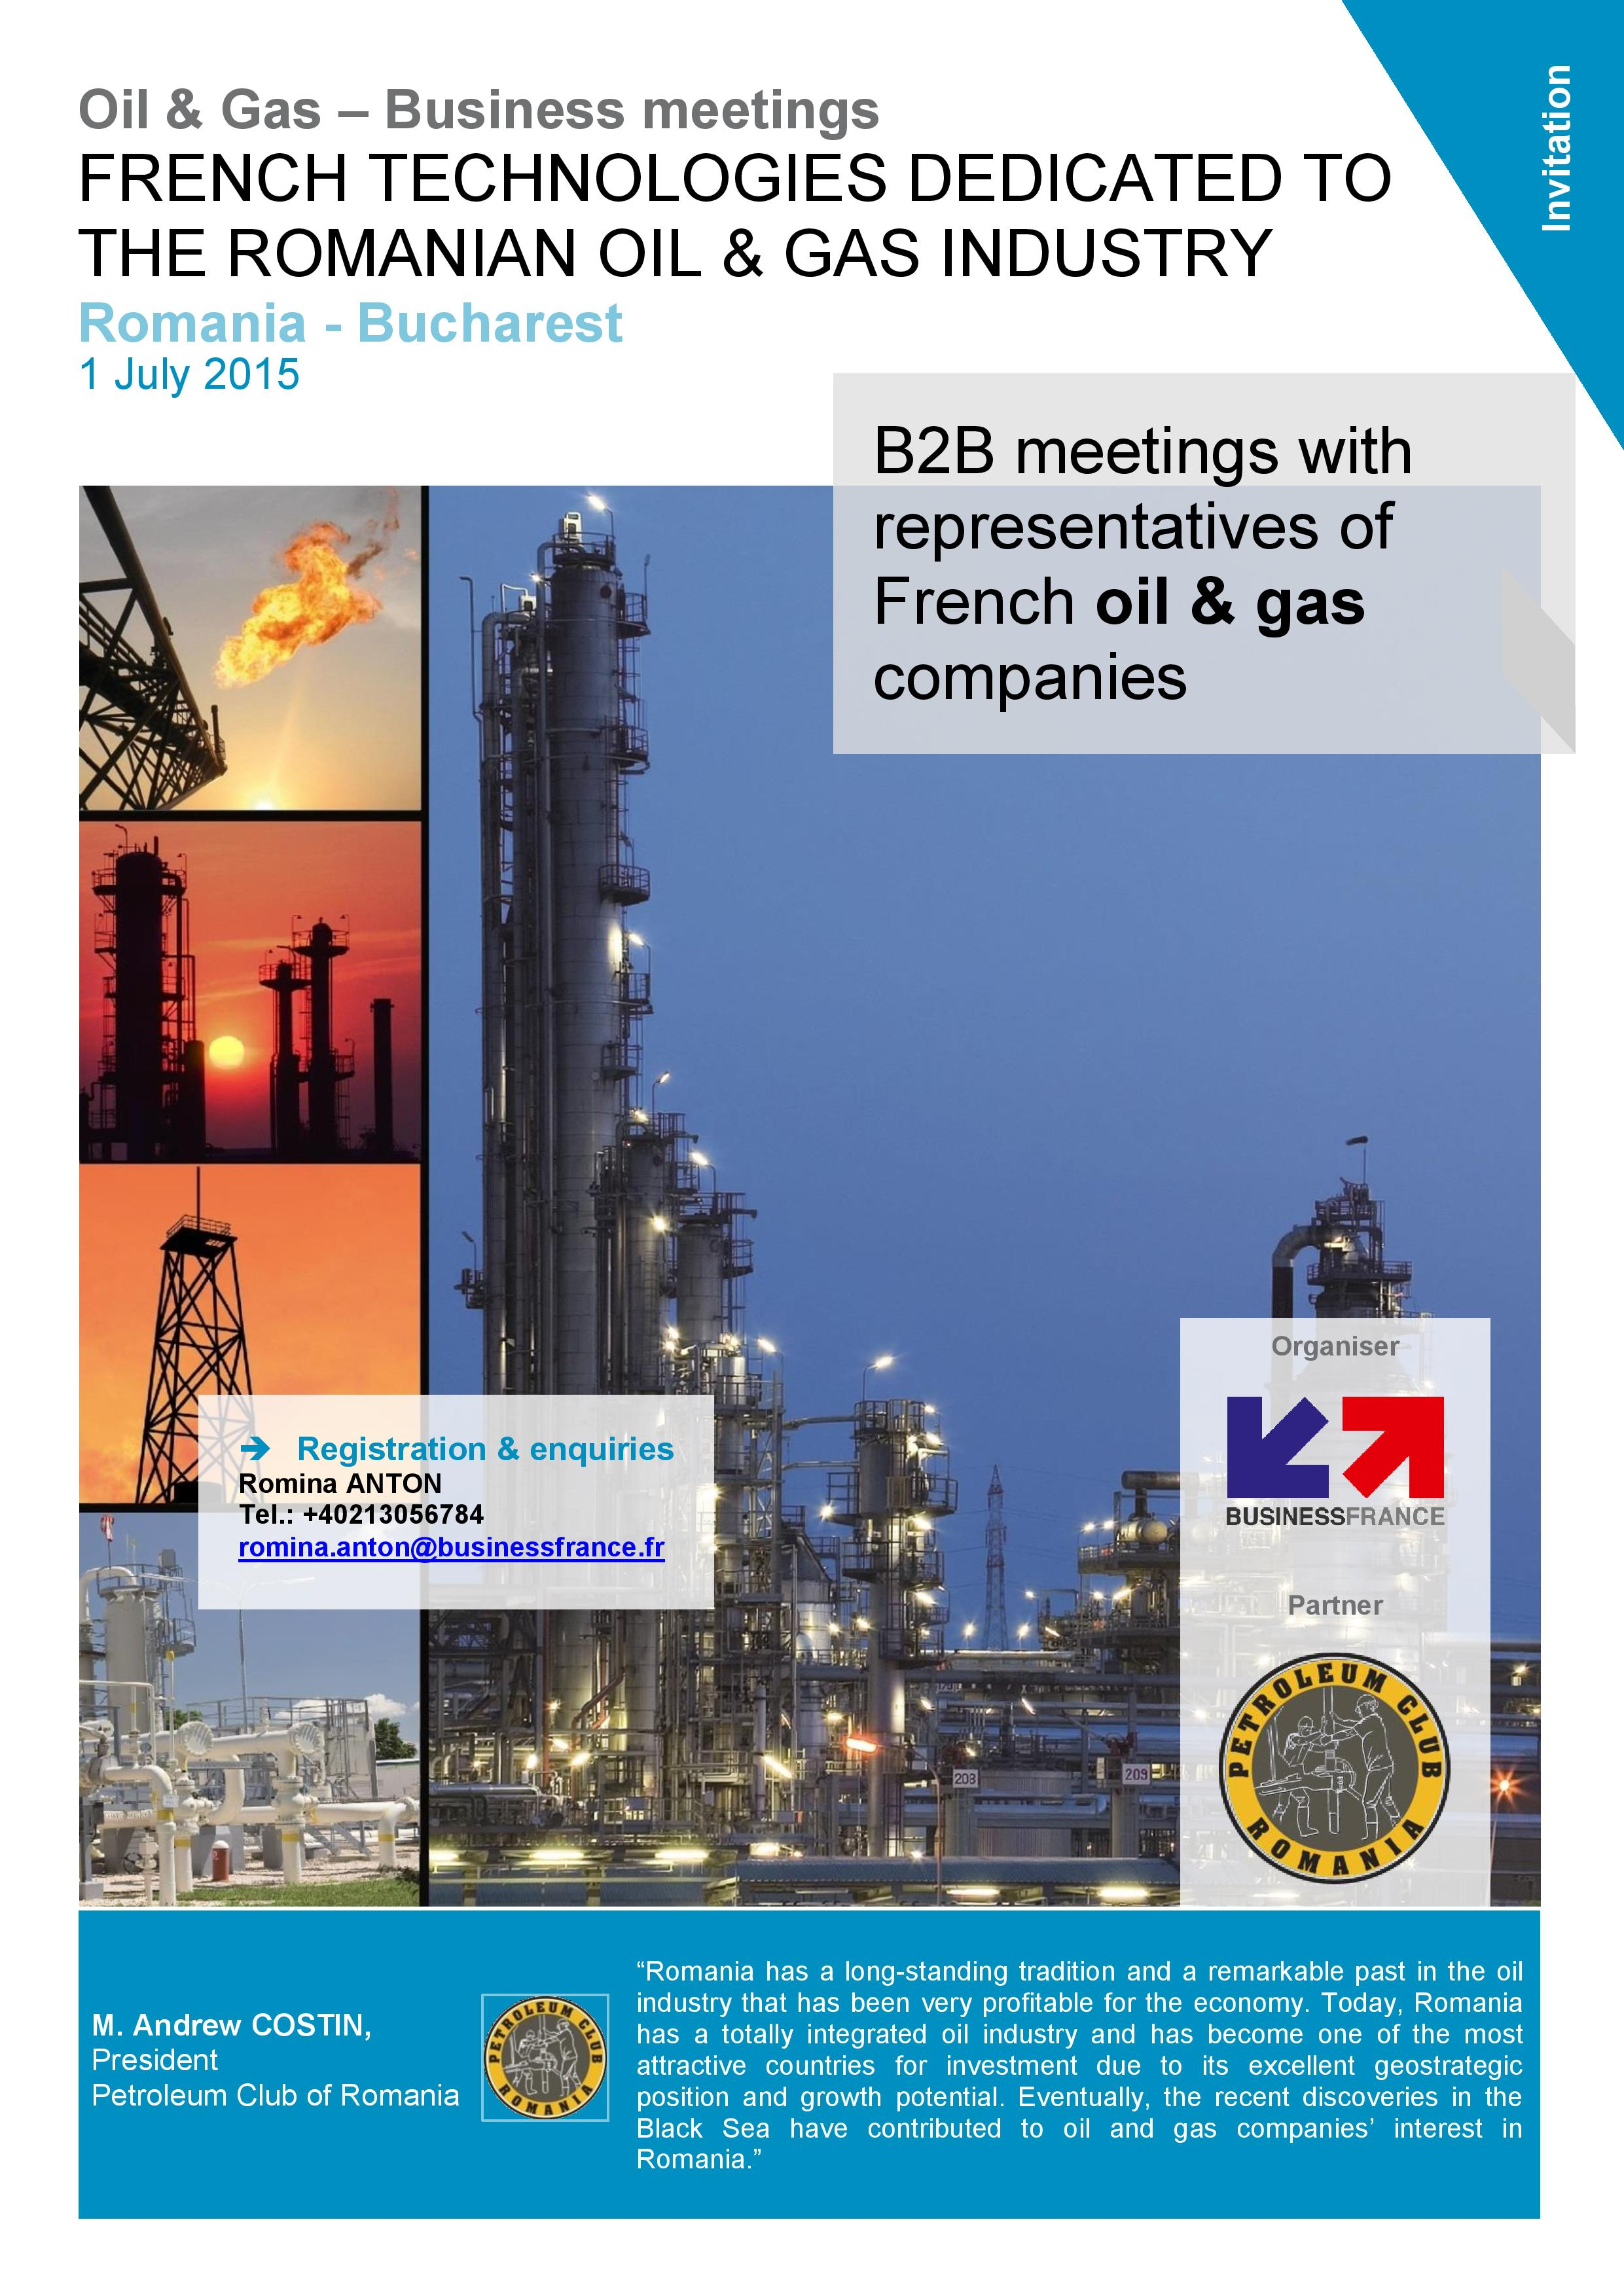 B2B meetings with representatives of French oil & gas companies